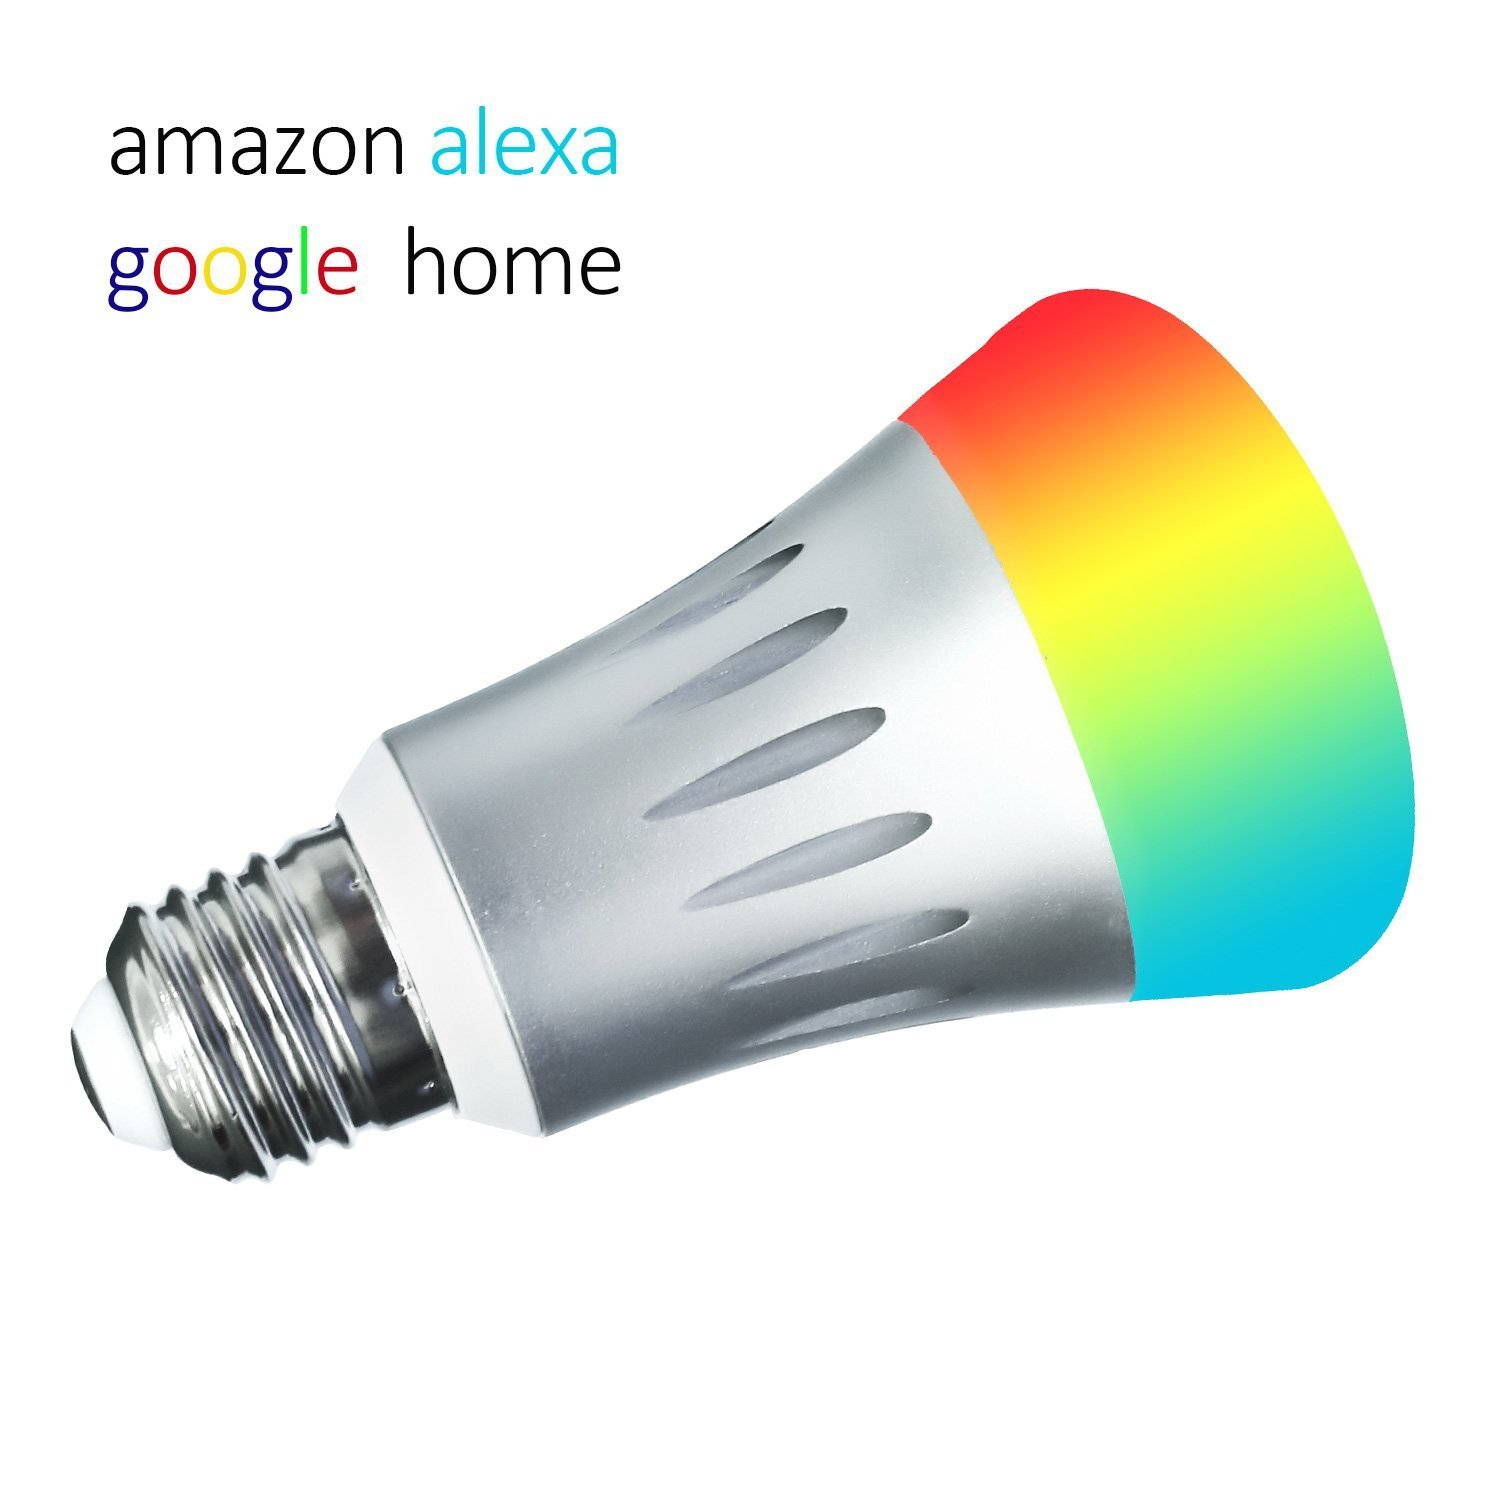 WiFi Led Light Bulbs,7W E27 Wireless WiFi Remote Control Smart Bulb Lamp Light Compatible with Alexa and Google Home, No Hub Required